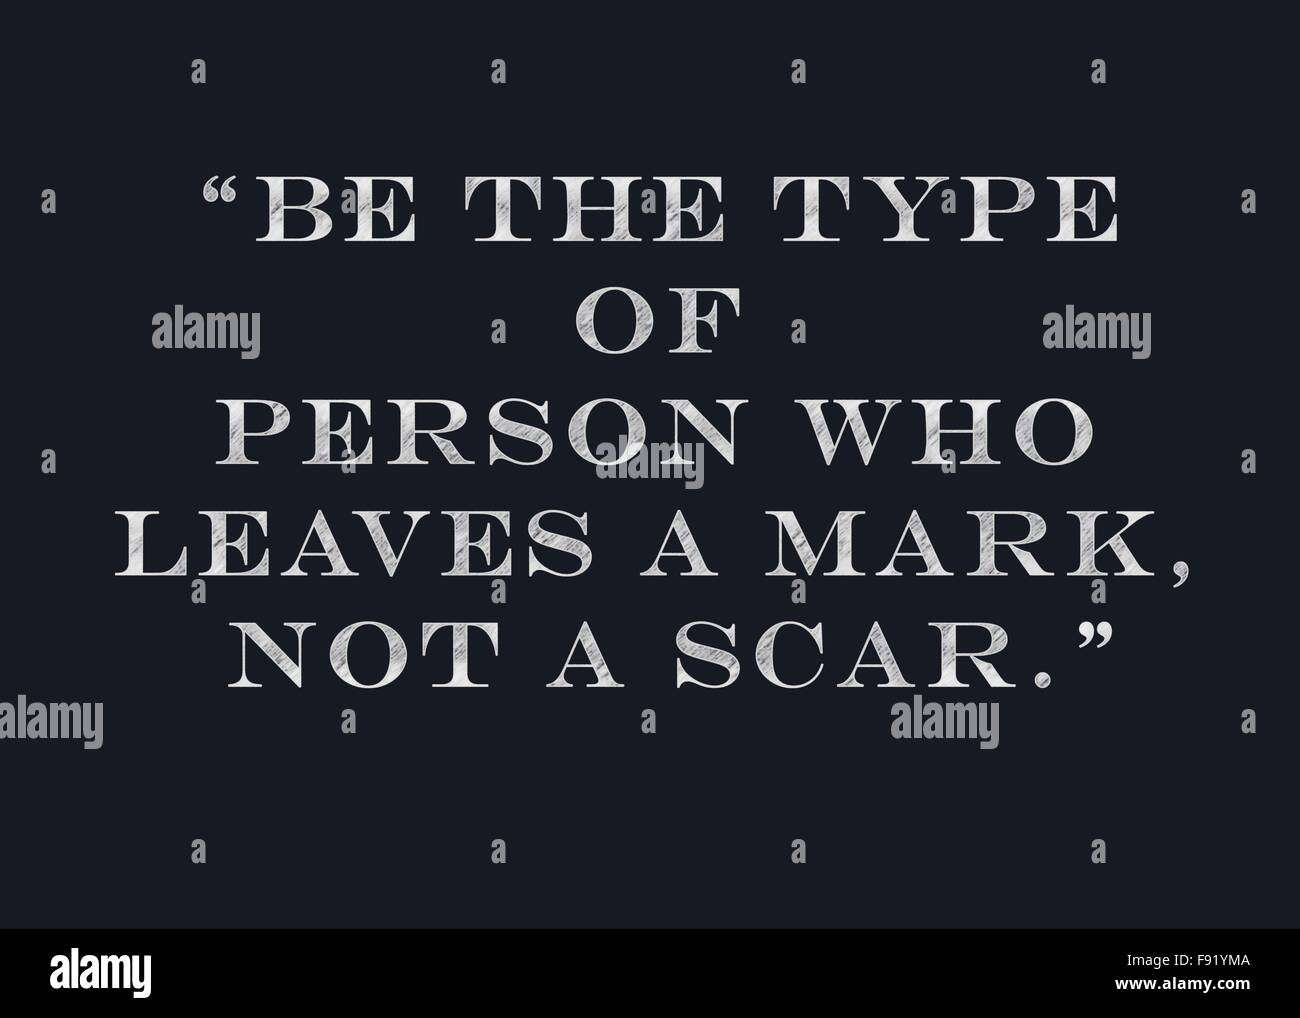 """Chalk drawing - """"Be the type of person who leaves a mark, not a scar """" - Stock Image"""